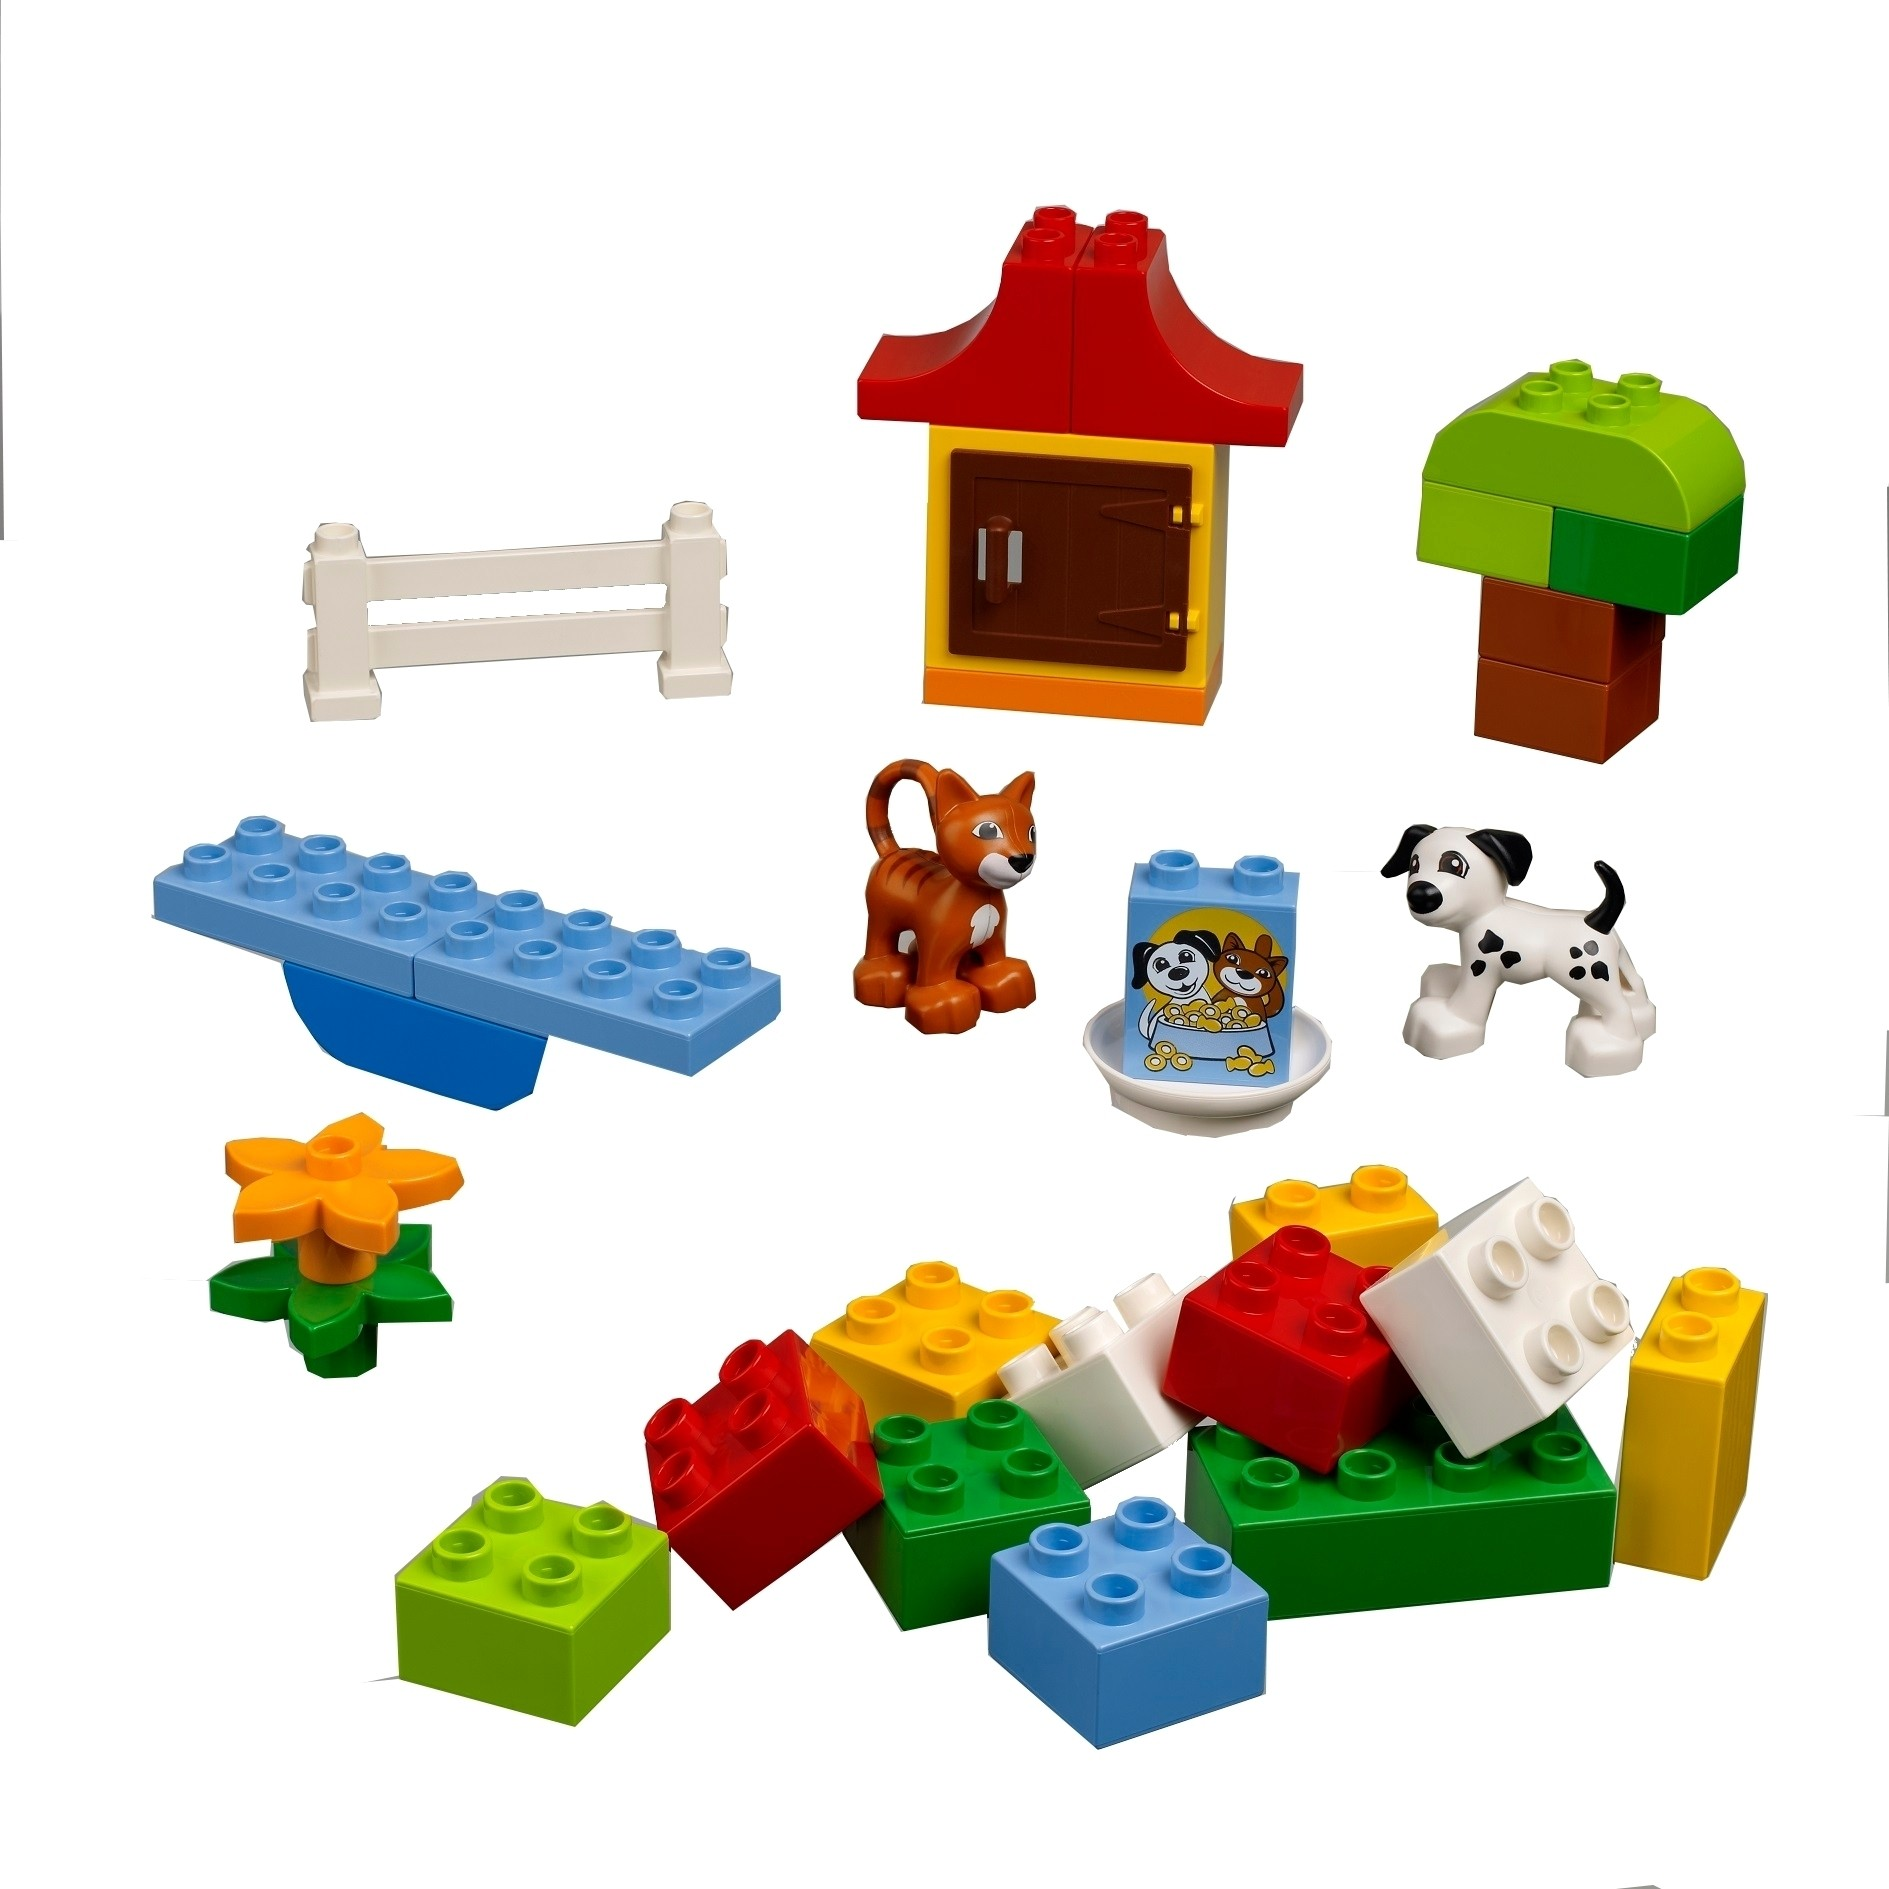 Lego Price List In India Buy Lego Online At Best Price In India